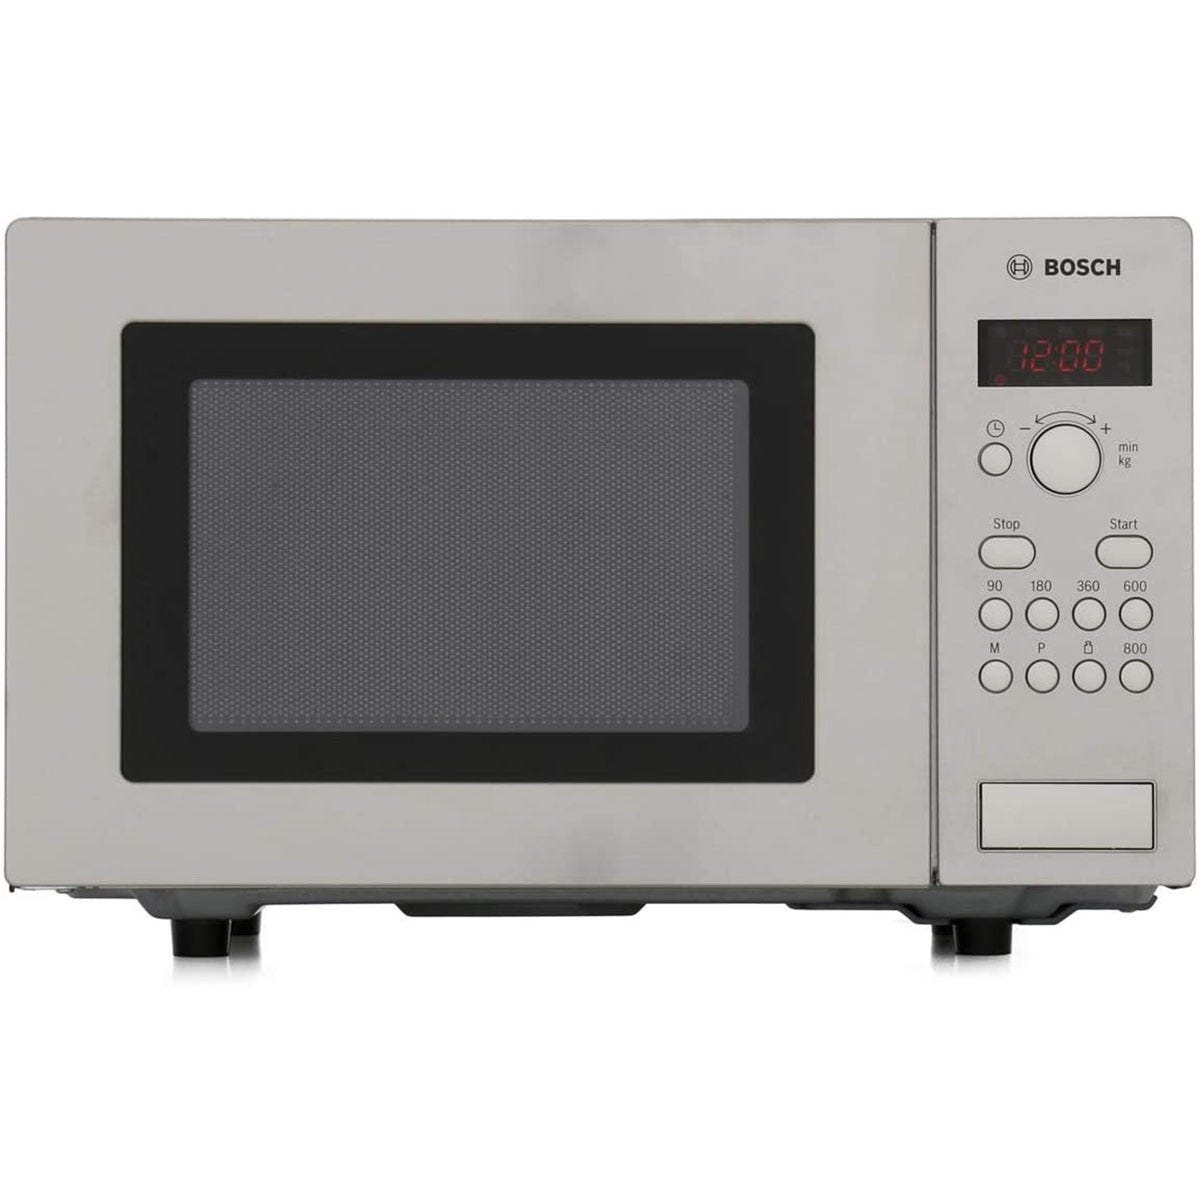 Bosch HMT75M451B Compact Touch Control Microwave Oven - Brushed Steel